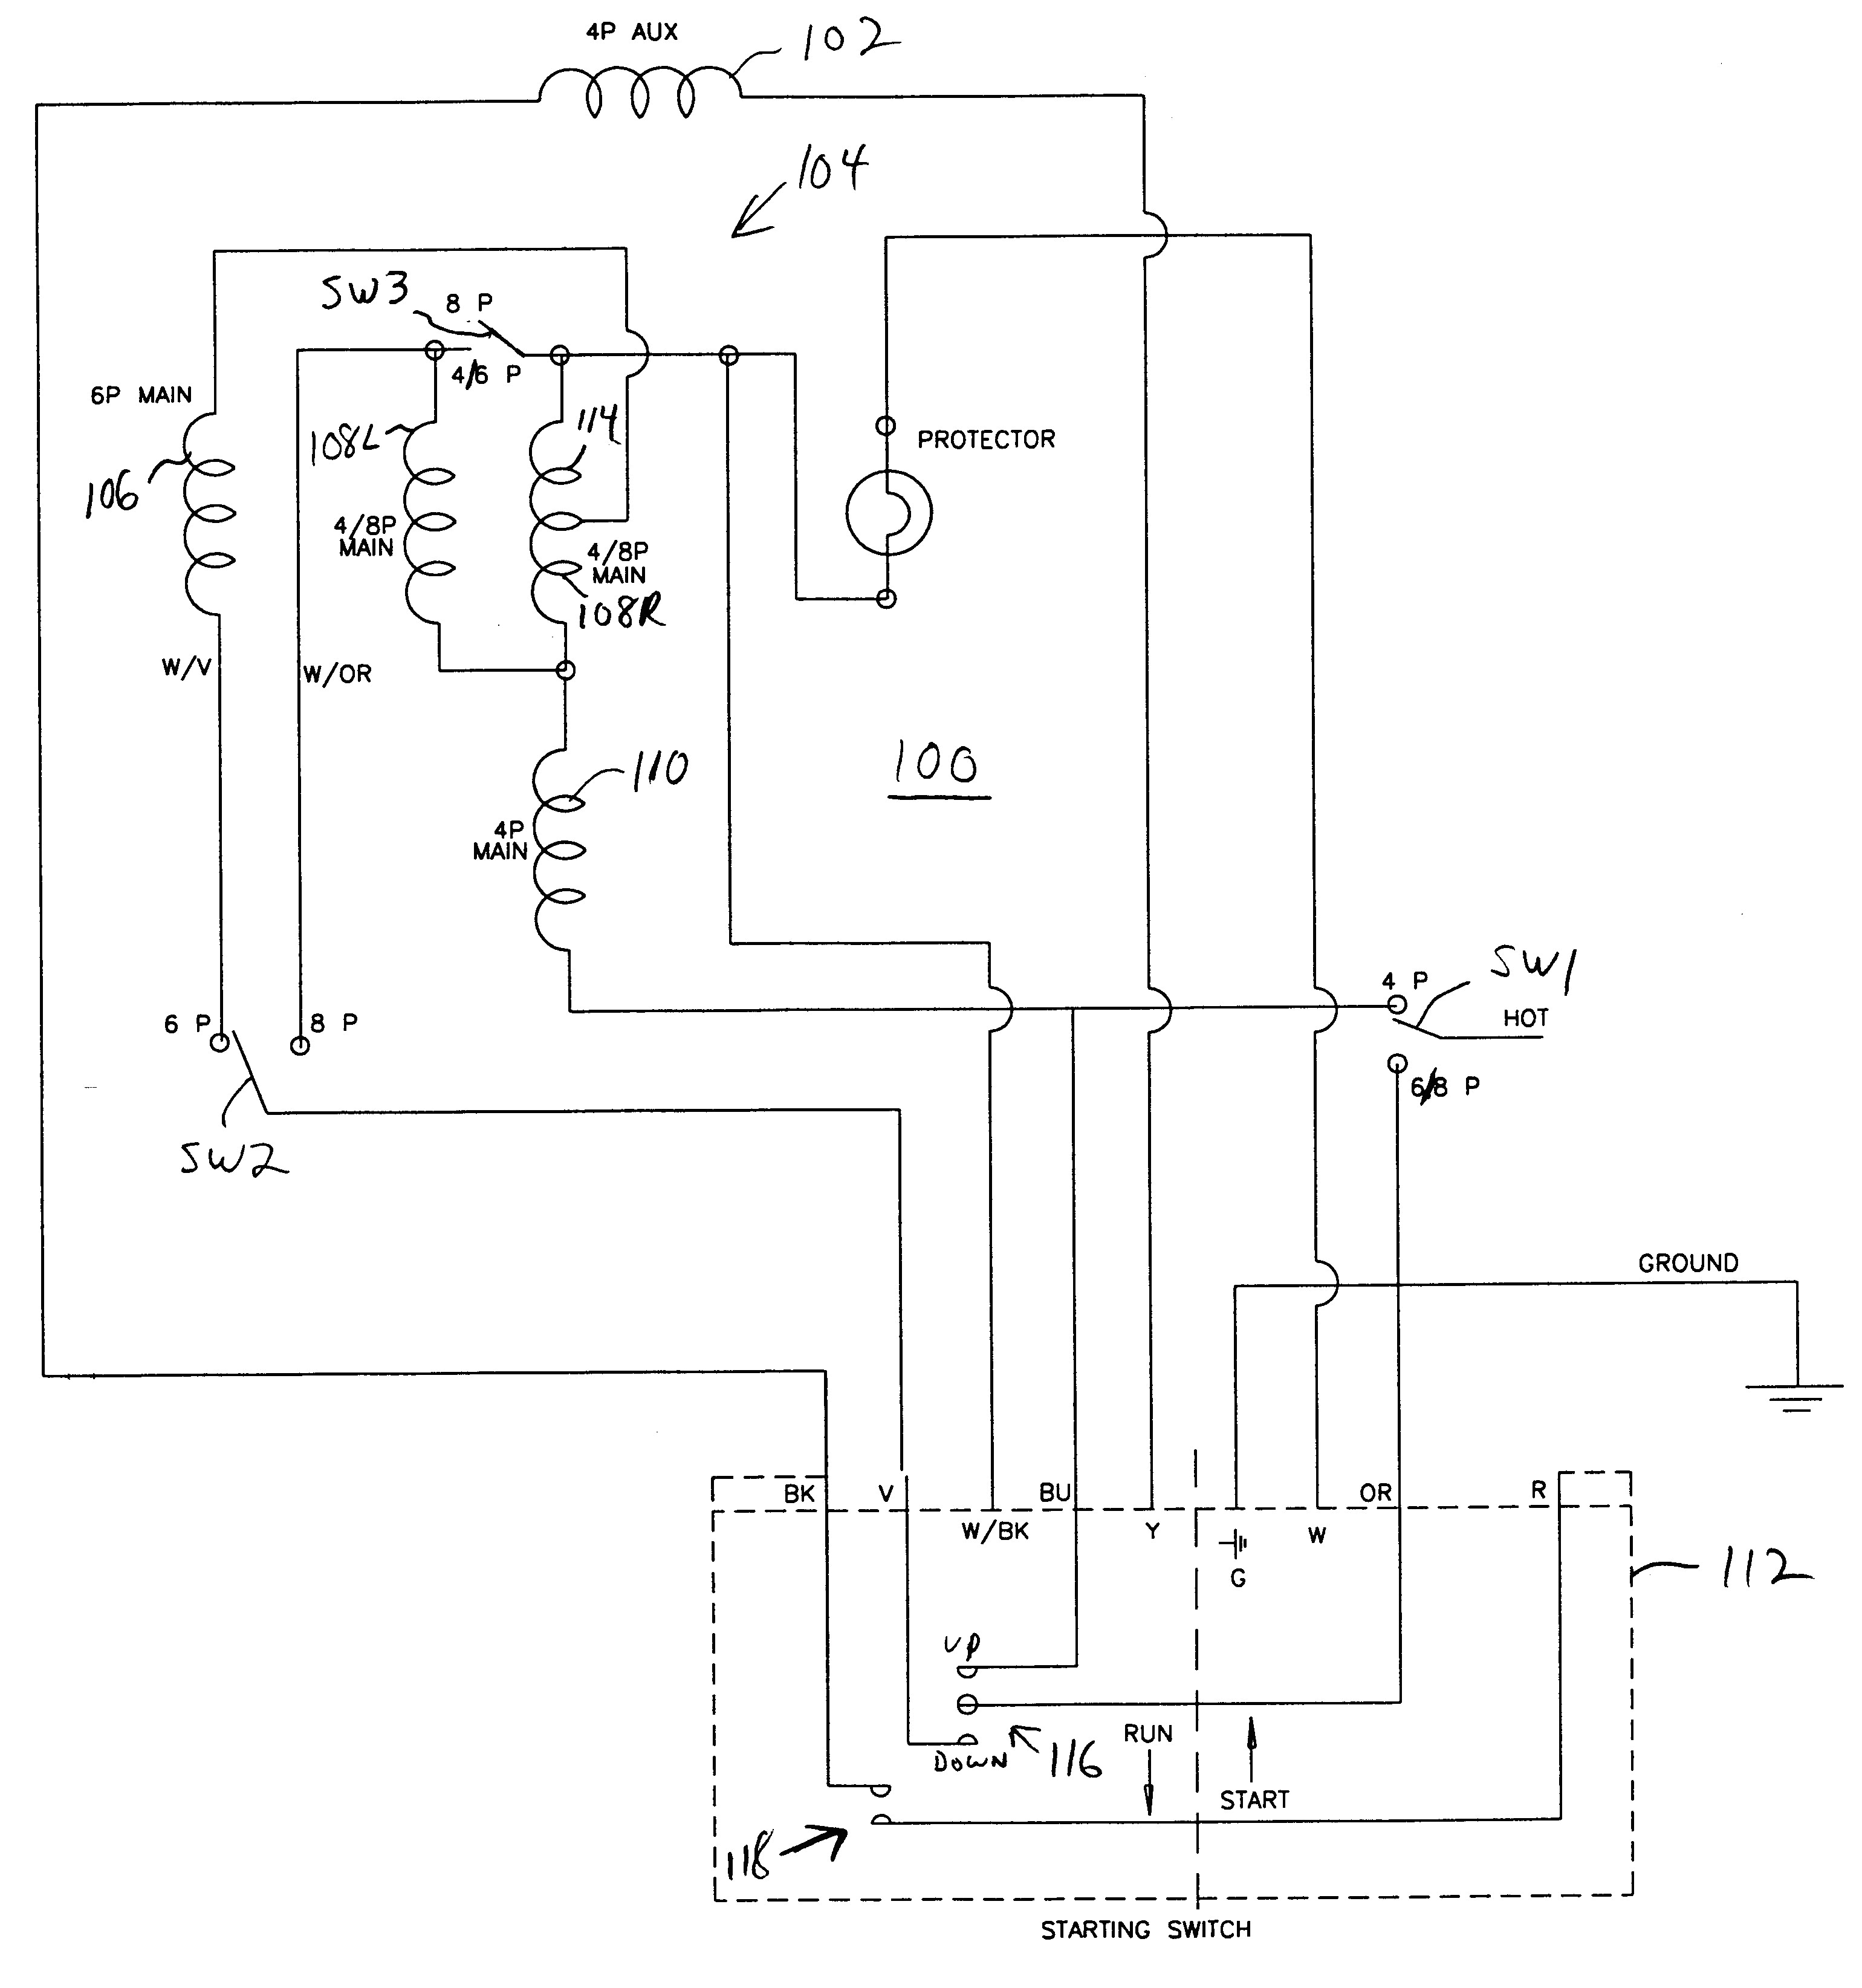 wiring diagram for capacitor fresh two value capacitor motor wiring diagram simplified shapes capacitor